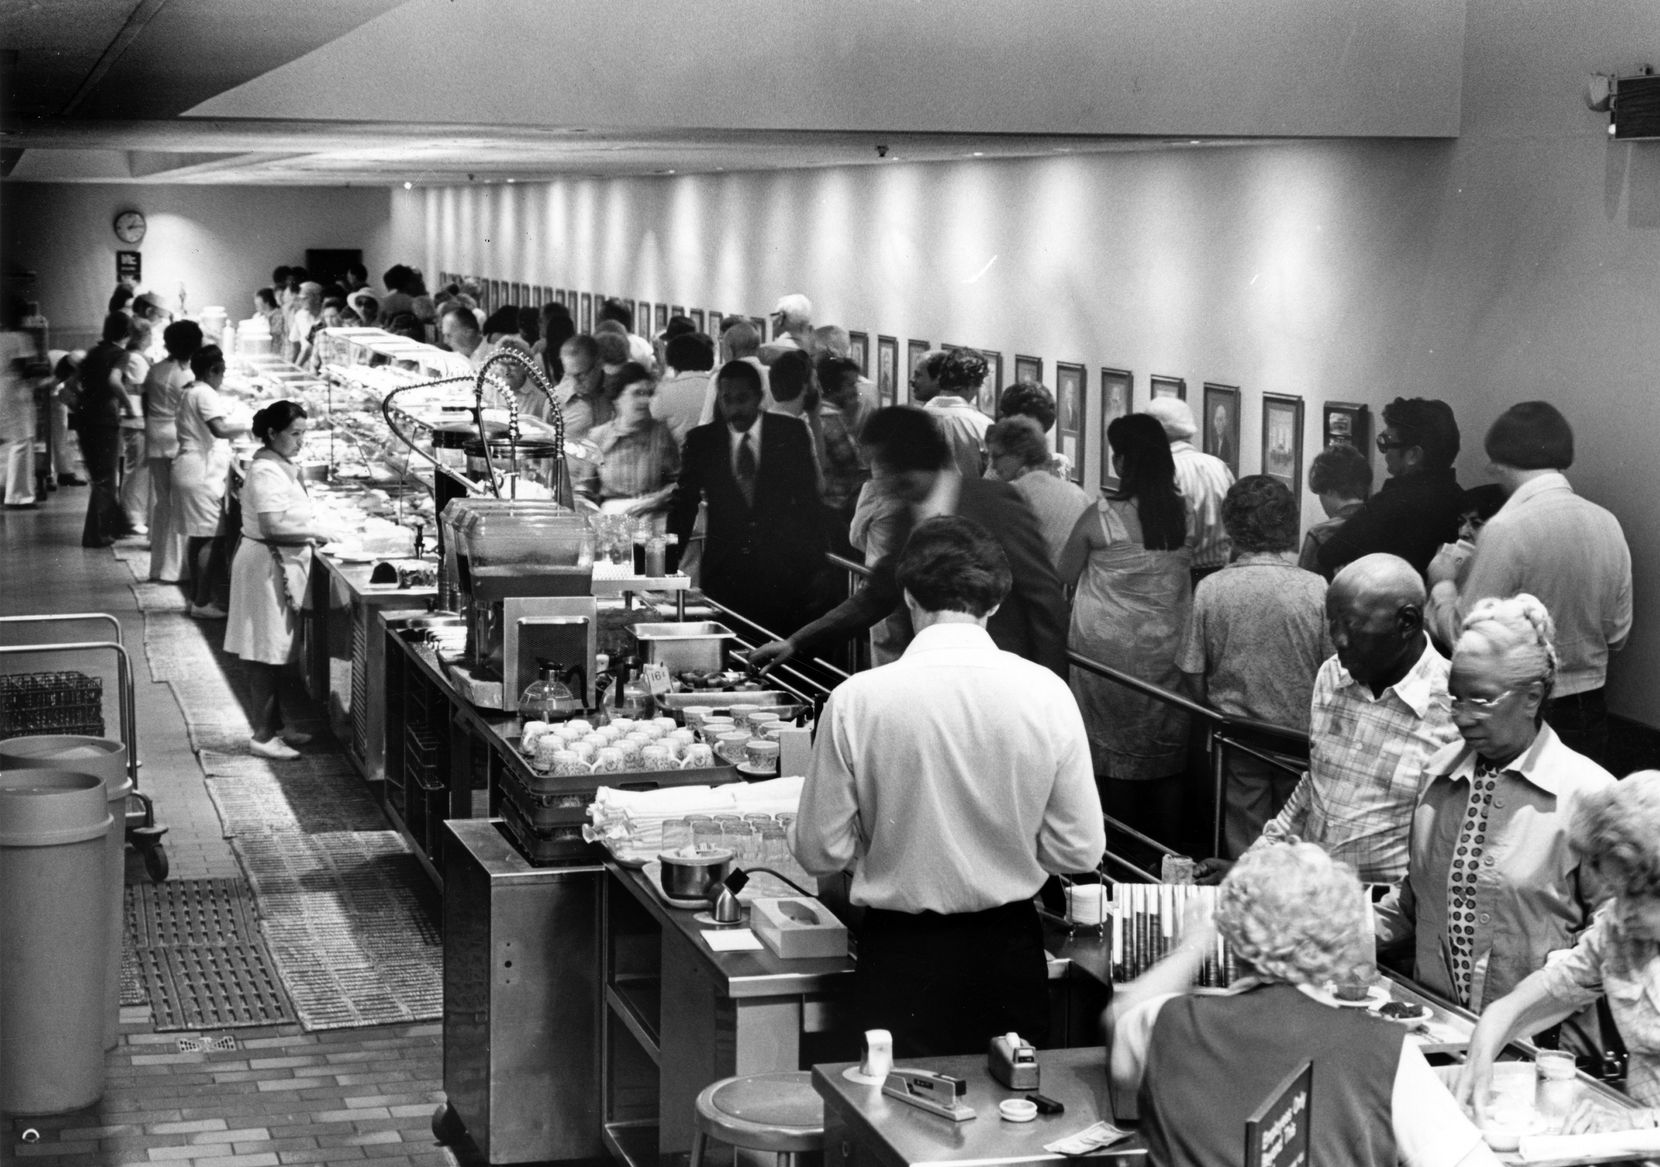 This is a June 1978 uncredited TDMN staff photo of the serving line at the Highland Park Cafeteria.